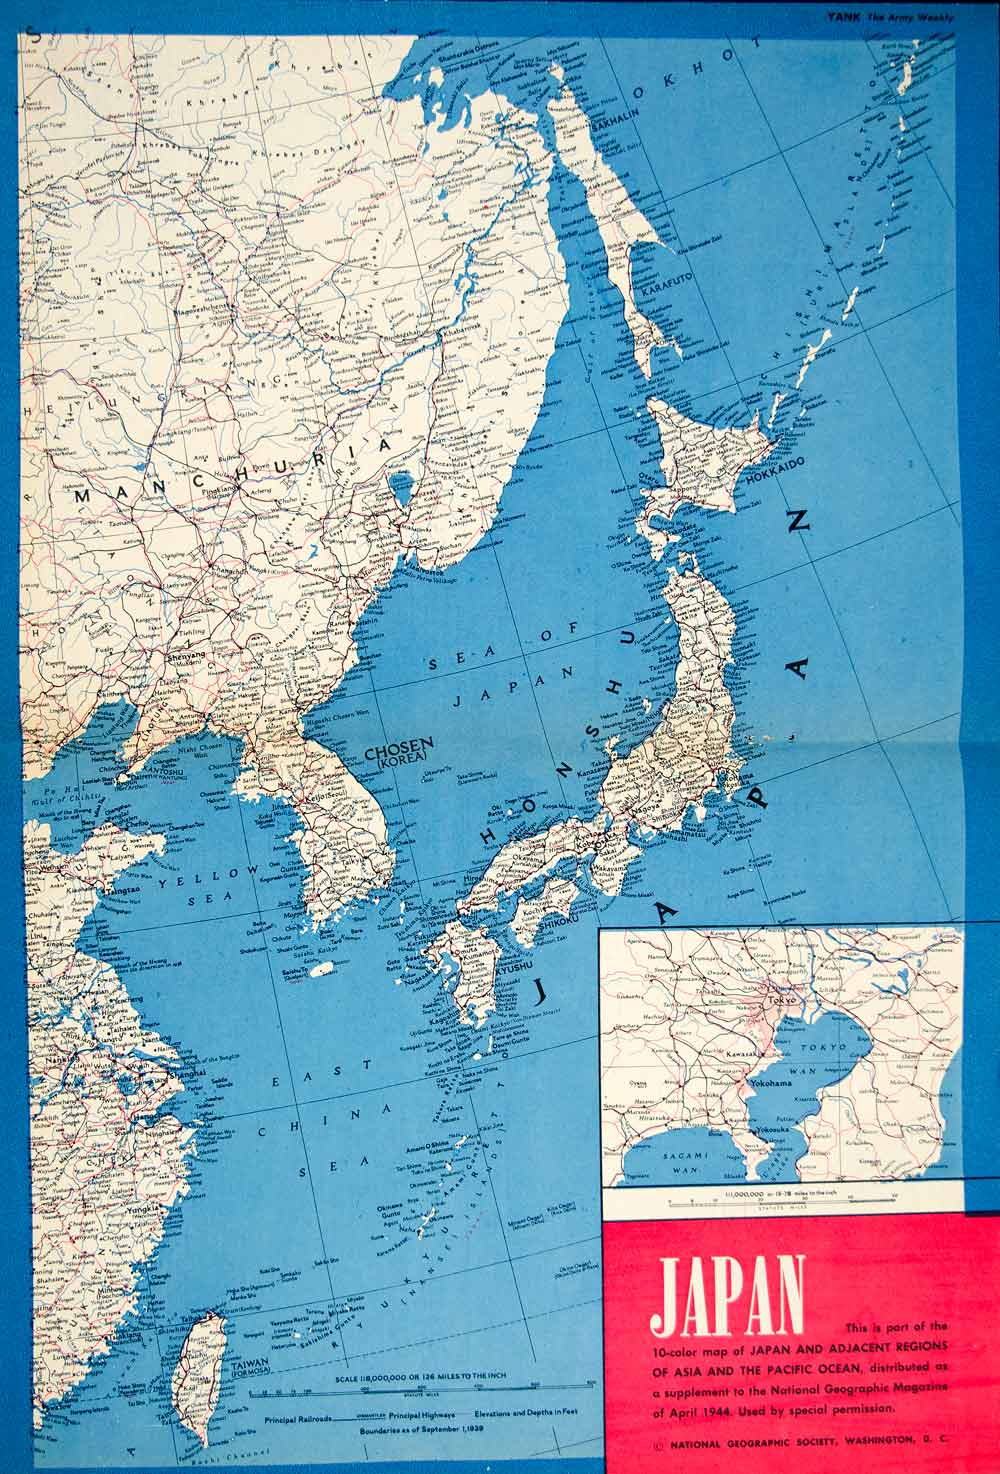 1945 map yank japan china philippines world war ii asia region 1945 map yank japan china philippines world war ii asia region historical yya2 gumiabroncs Image collections